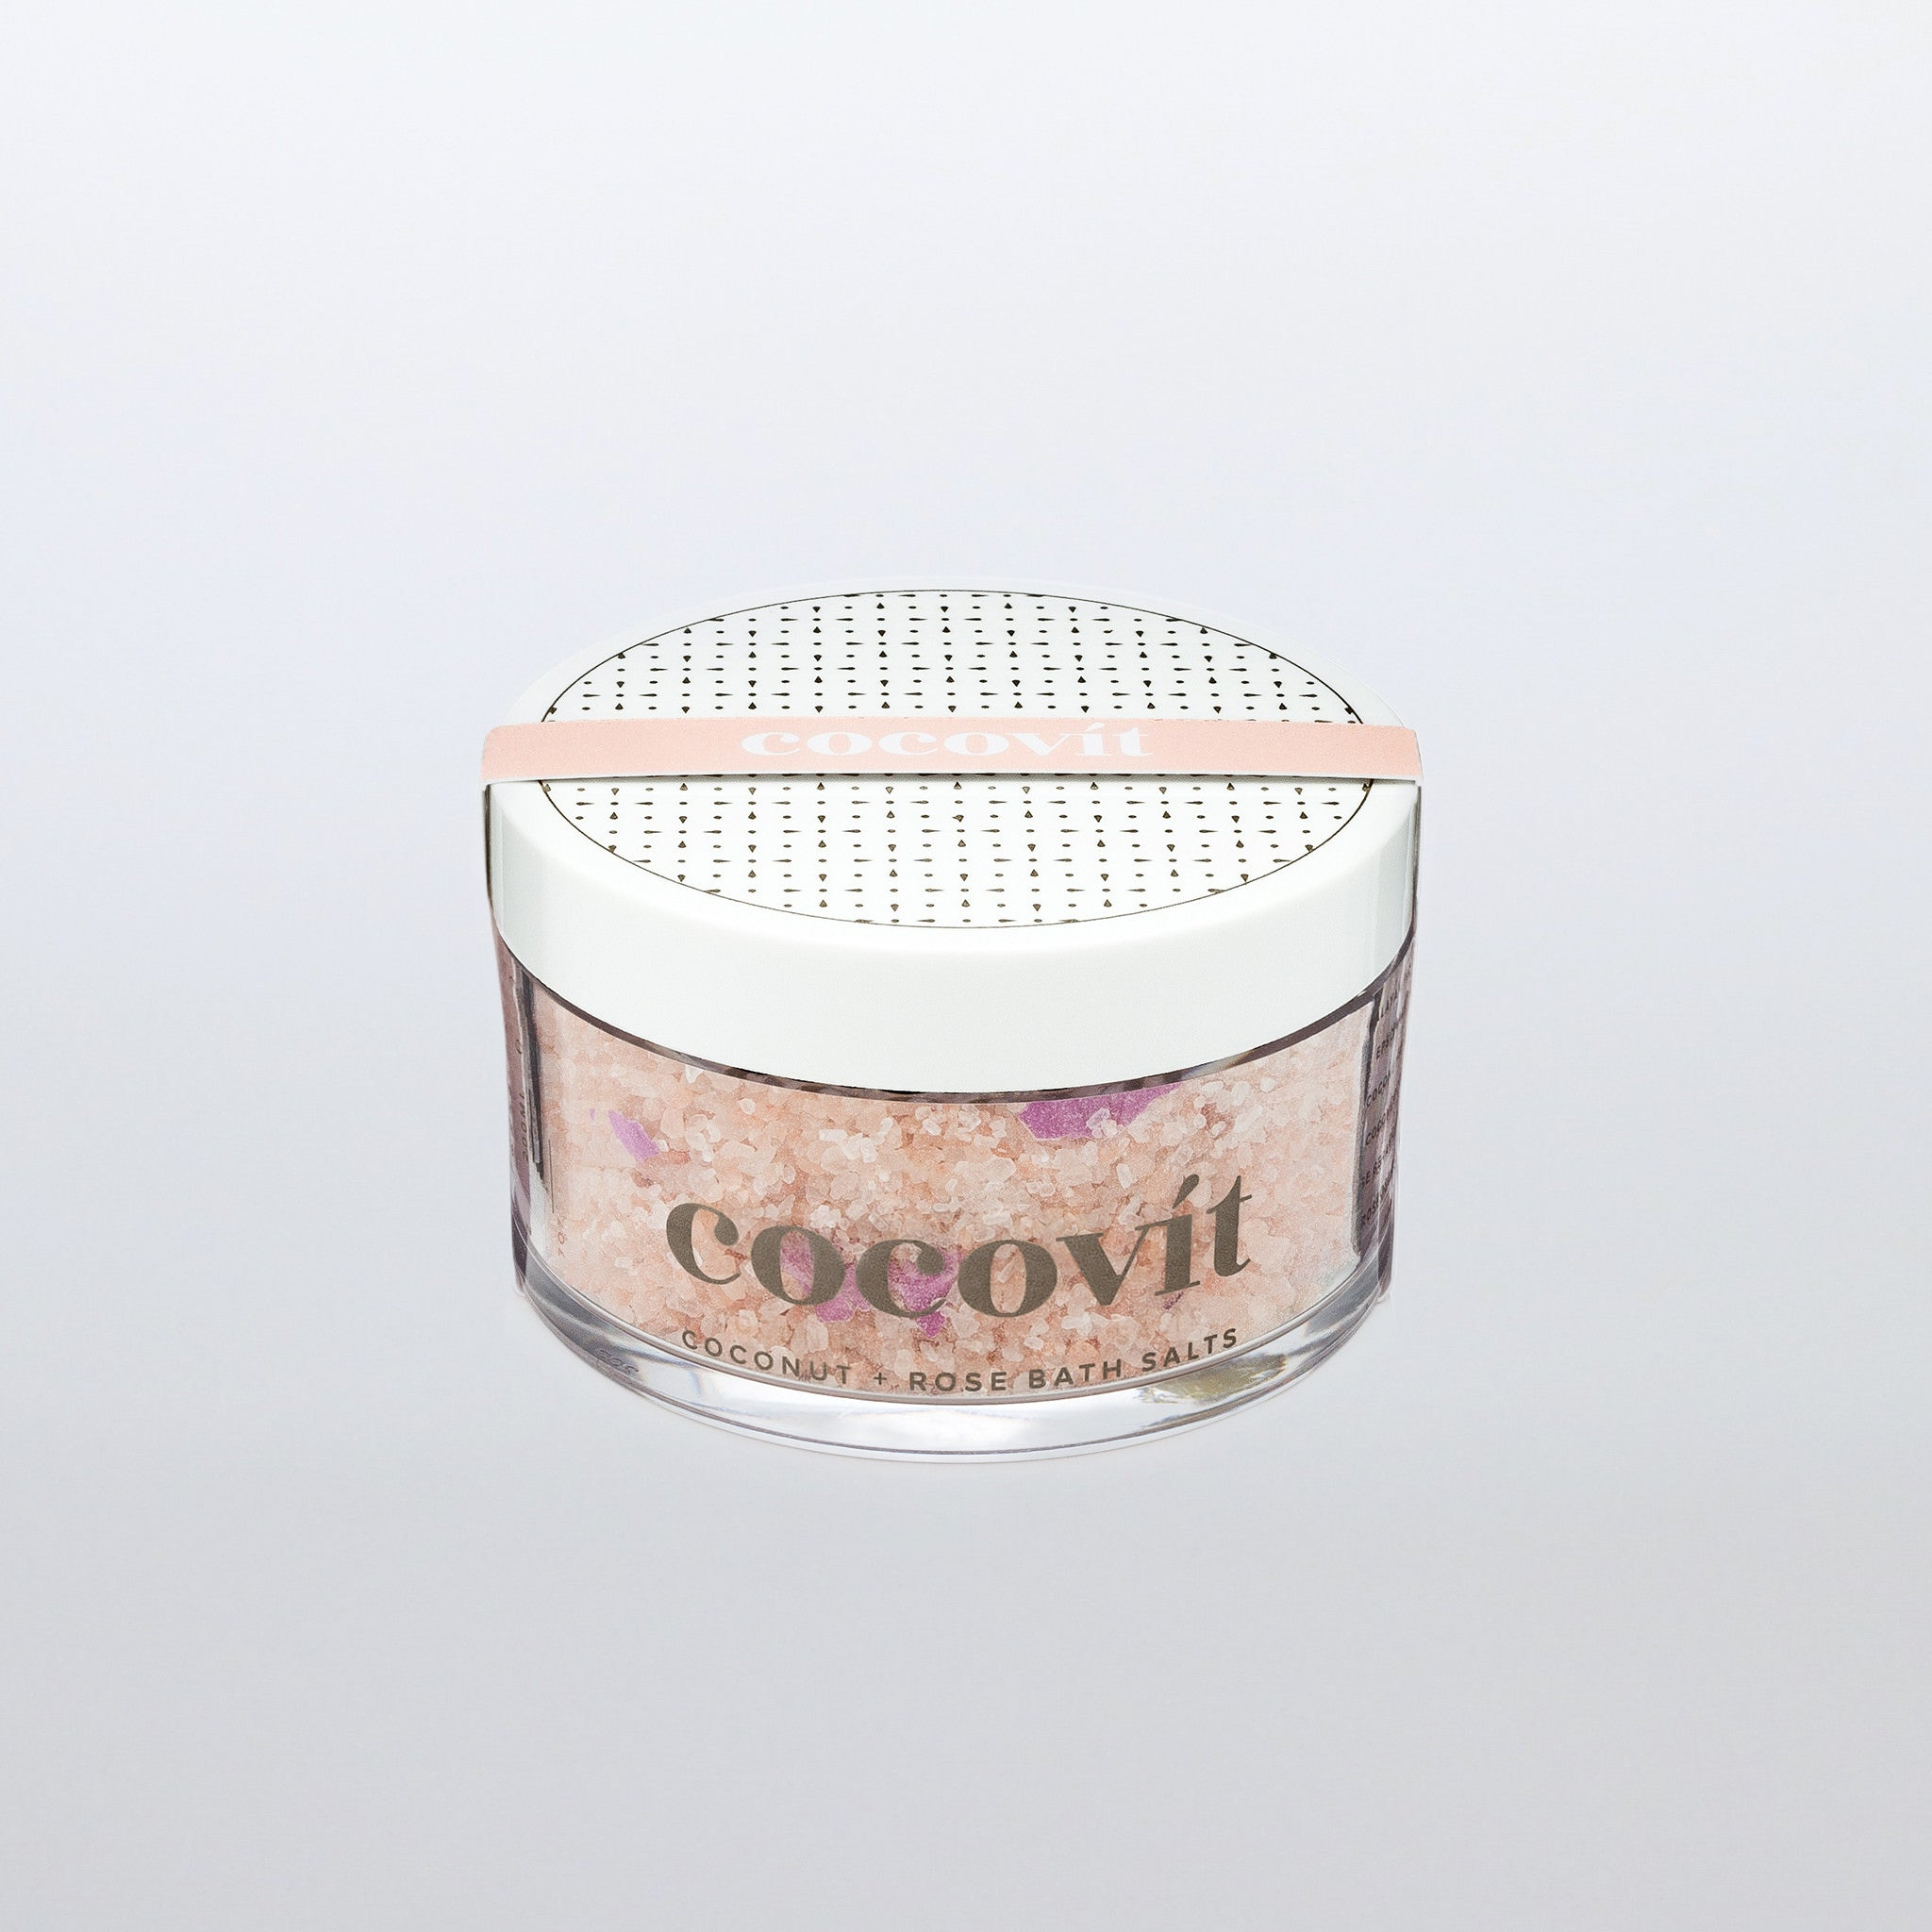 Cocovit Coconut + Rose Bath Salts, Body, Cocovit - Astrid Wylde